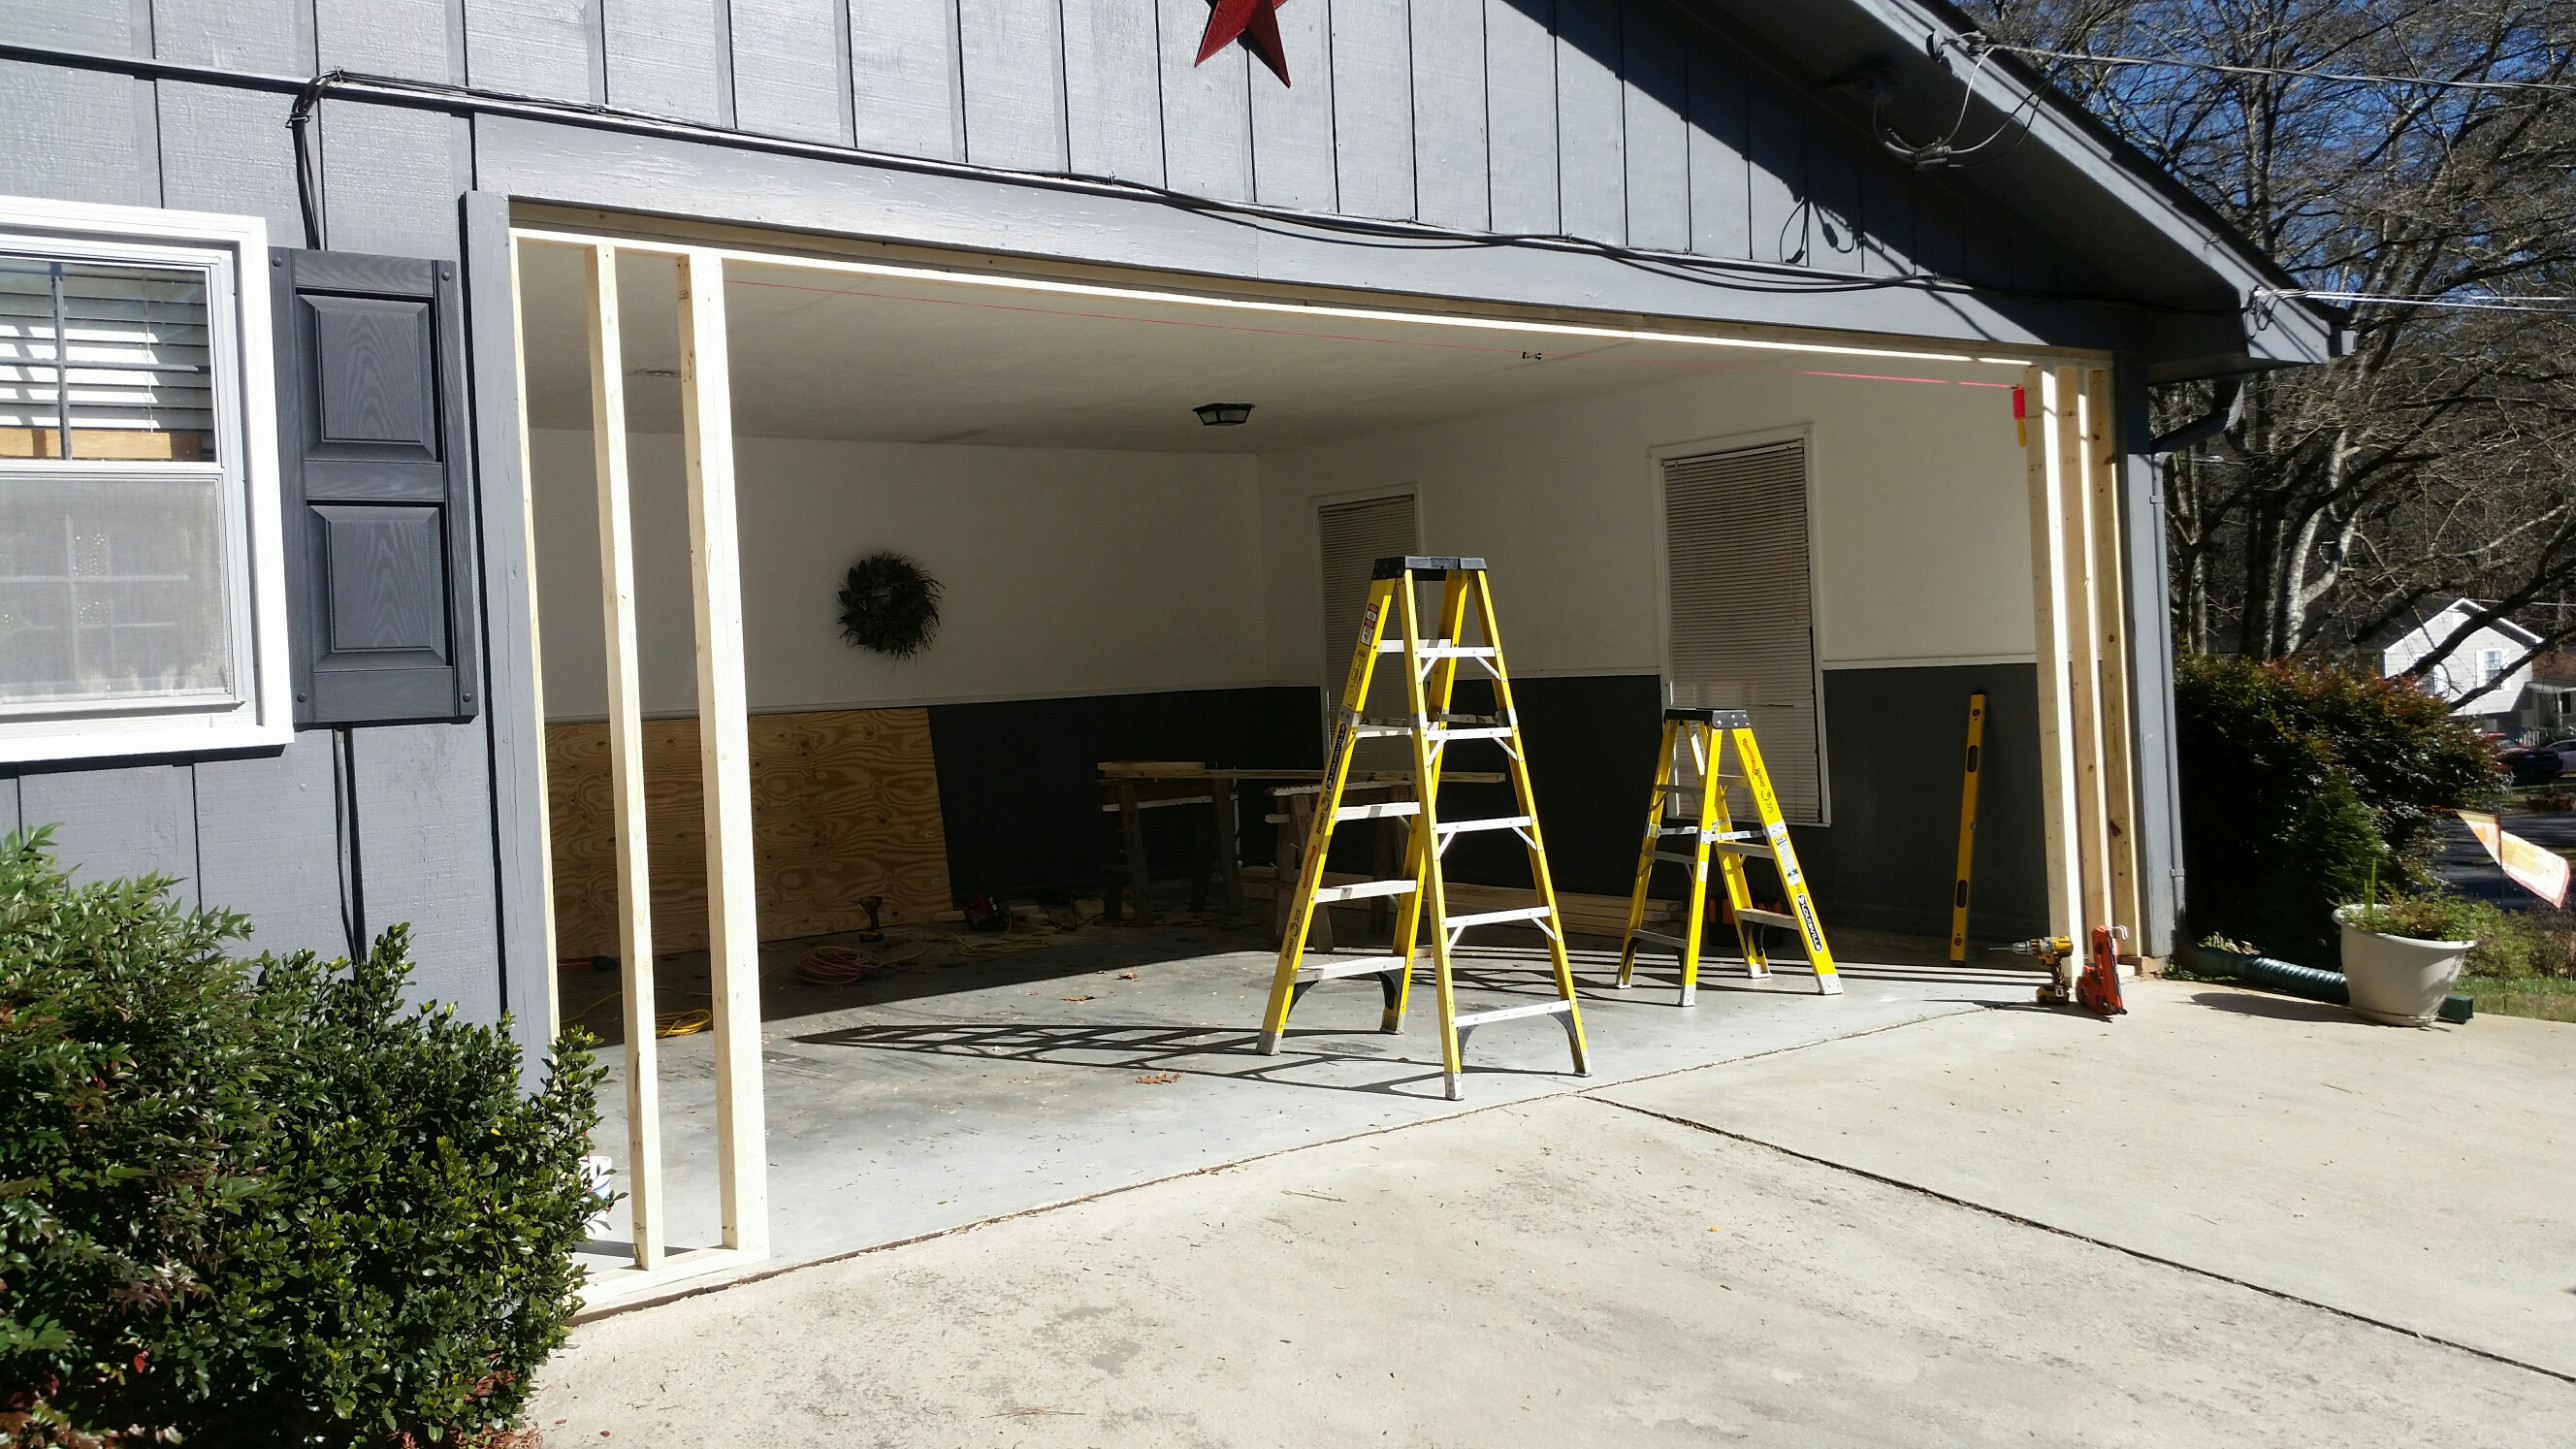 Carport to Garage Conversion | Overhead Door of Georgia